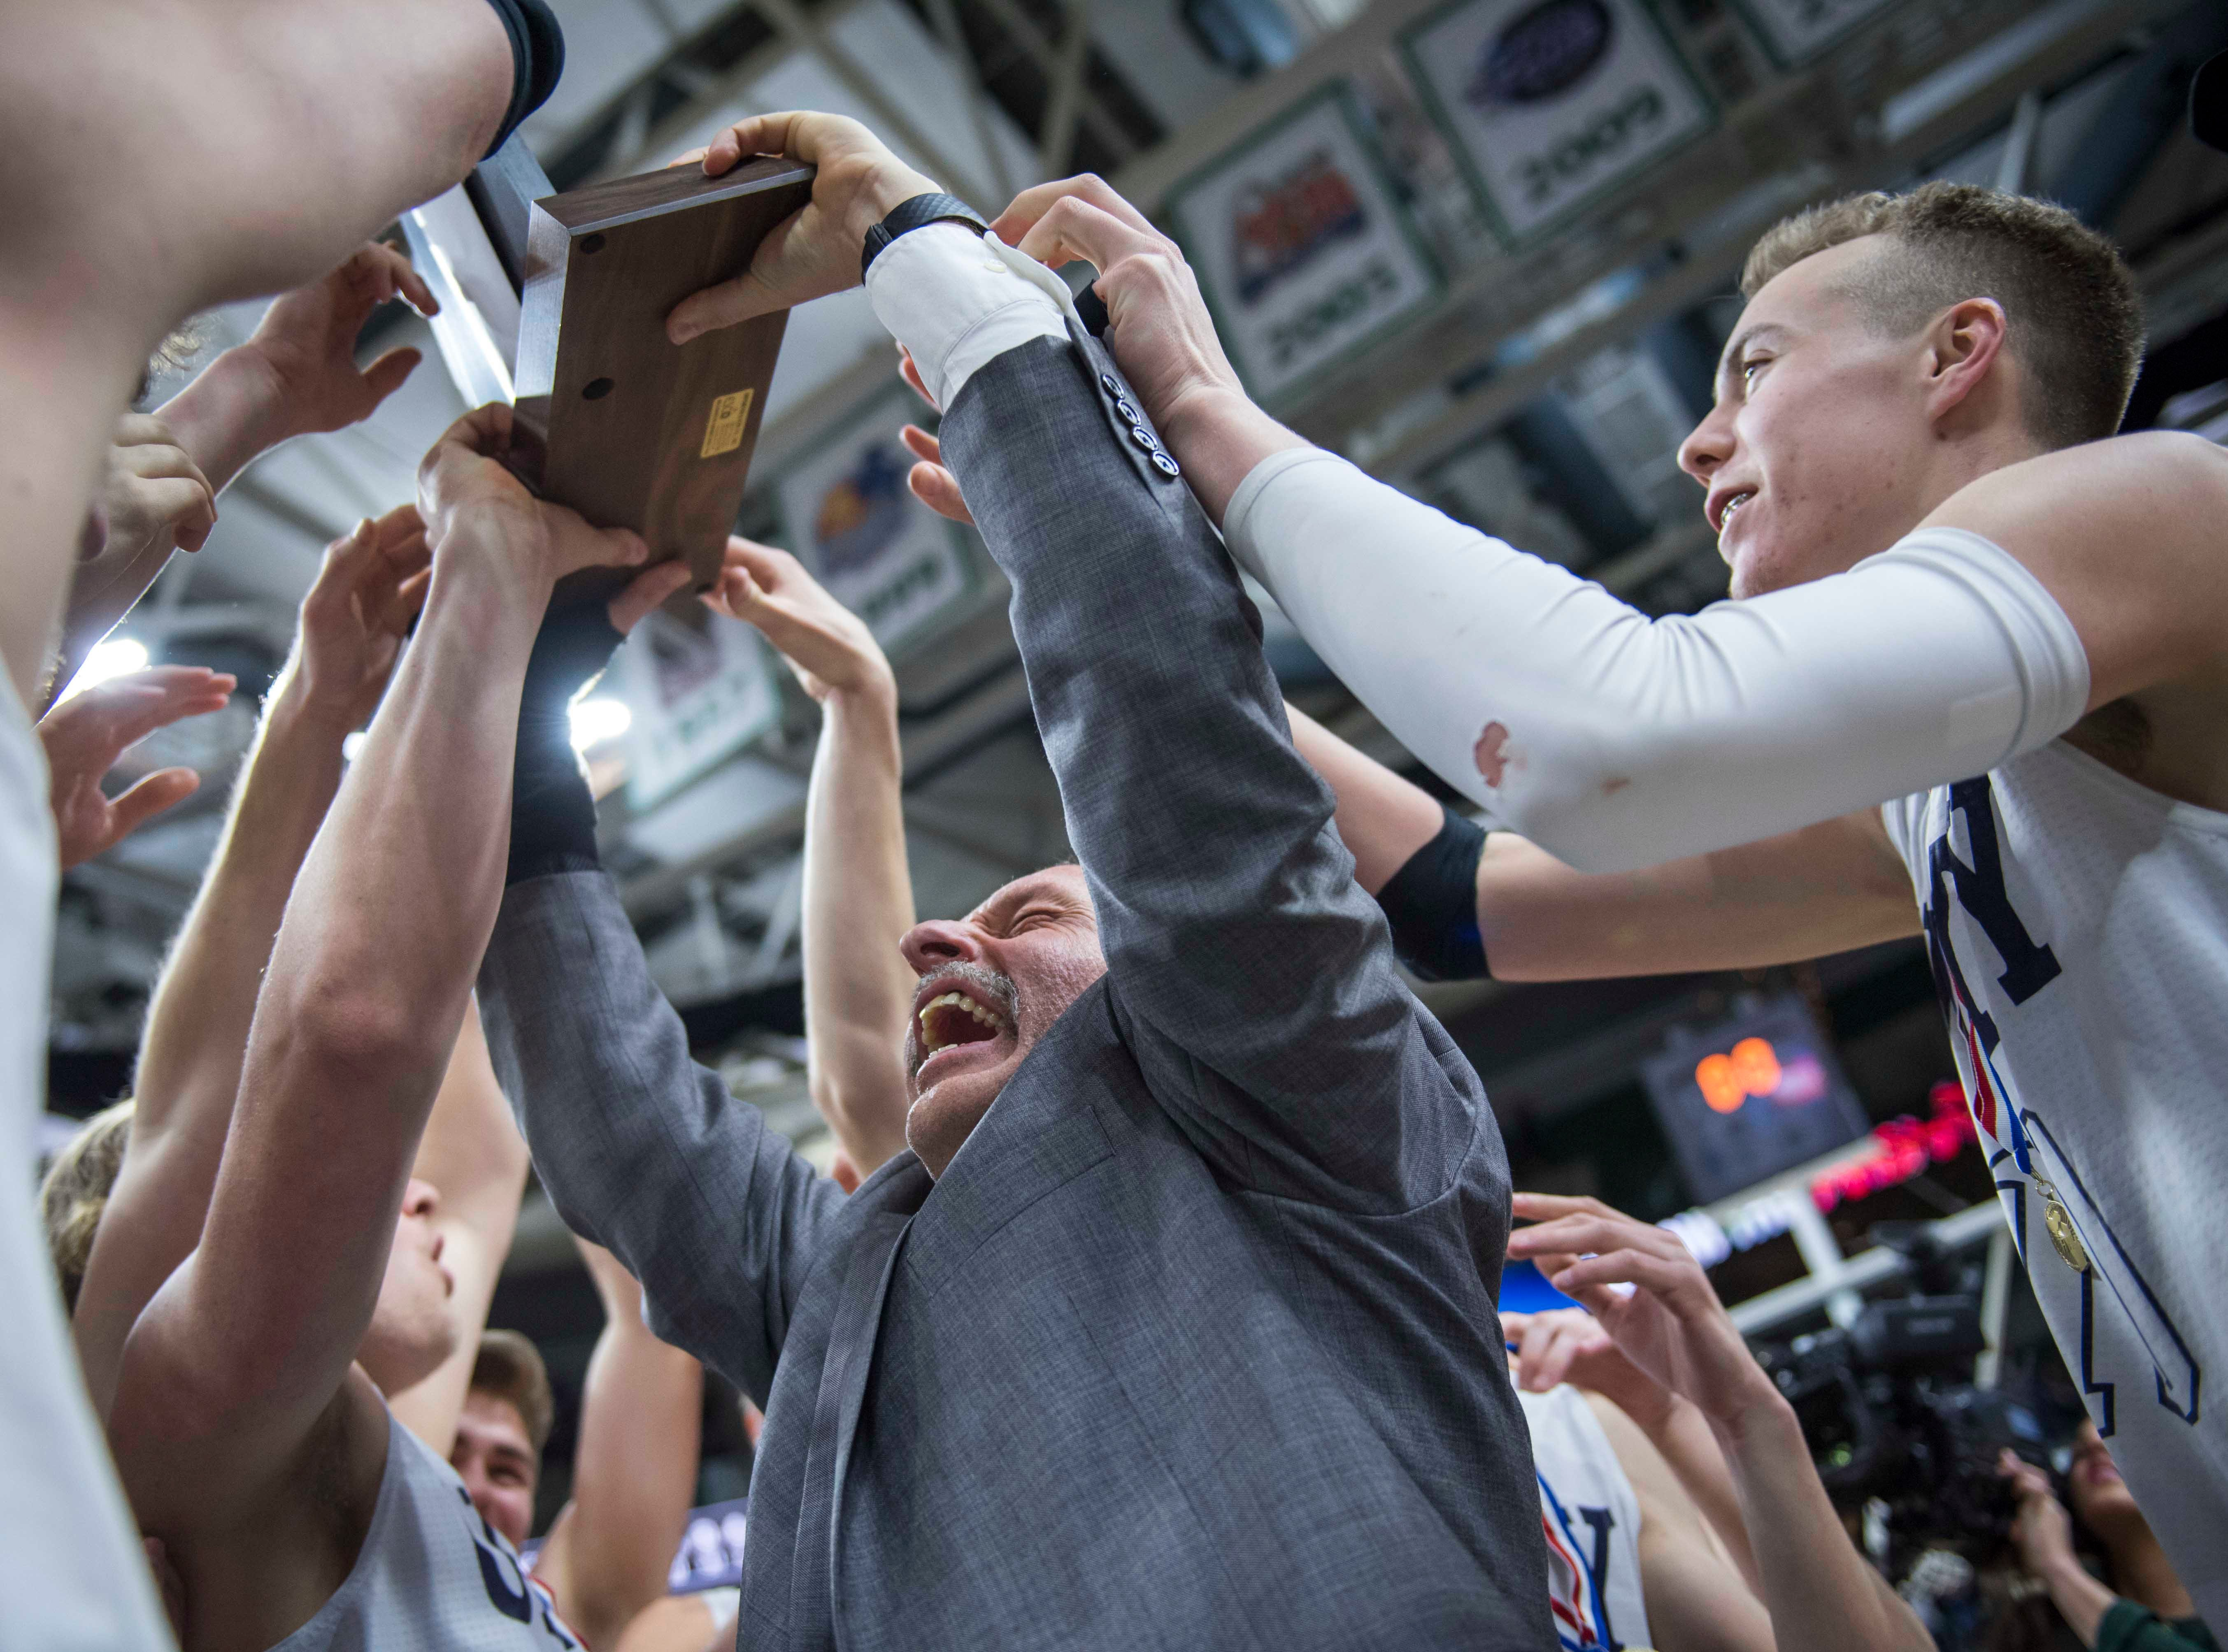 Hudsonville Unity Christian's head coach Scott Soodsma hoists the championship trophy after his team won the game.